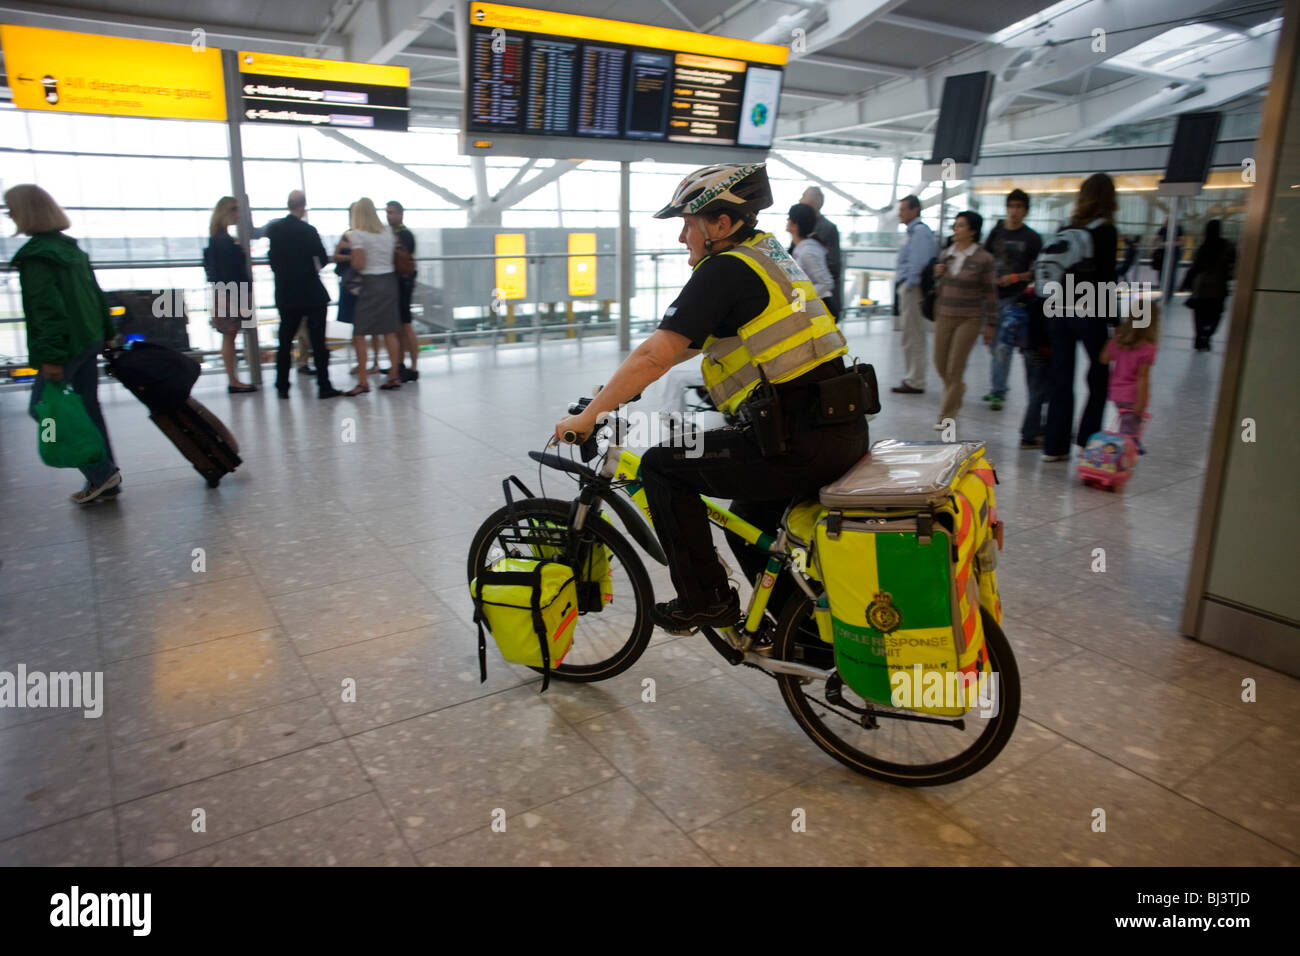 NHS Paramedic Janet Greenhead cycles through the departures concourse on her Specialized Rockhopper mountain bike - Stock Image